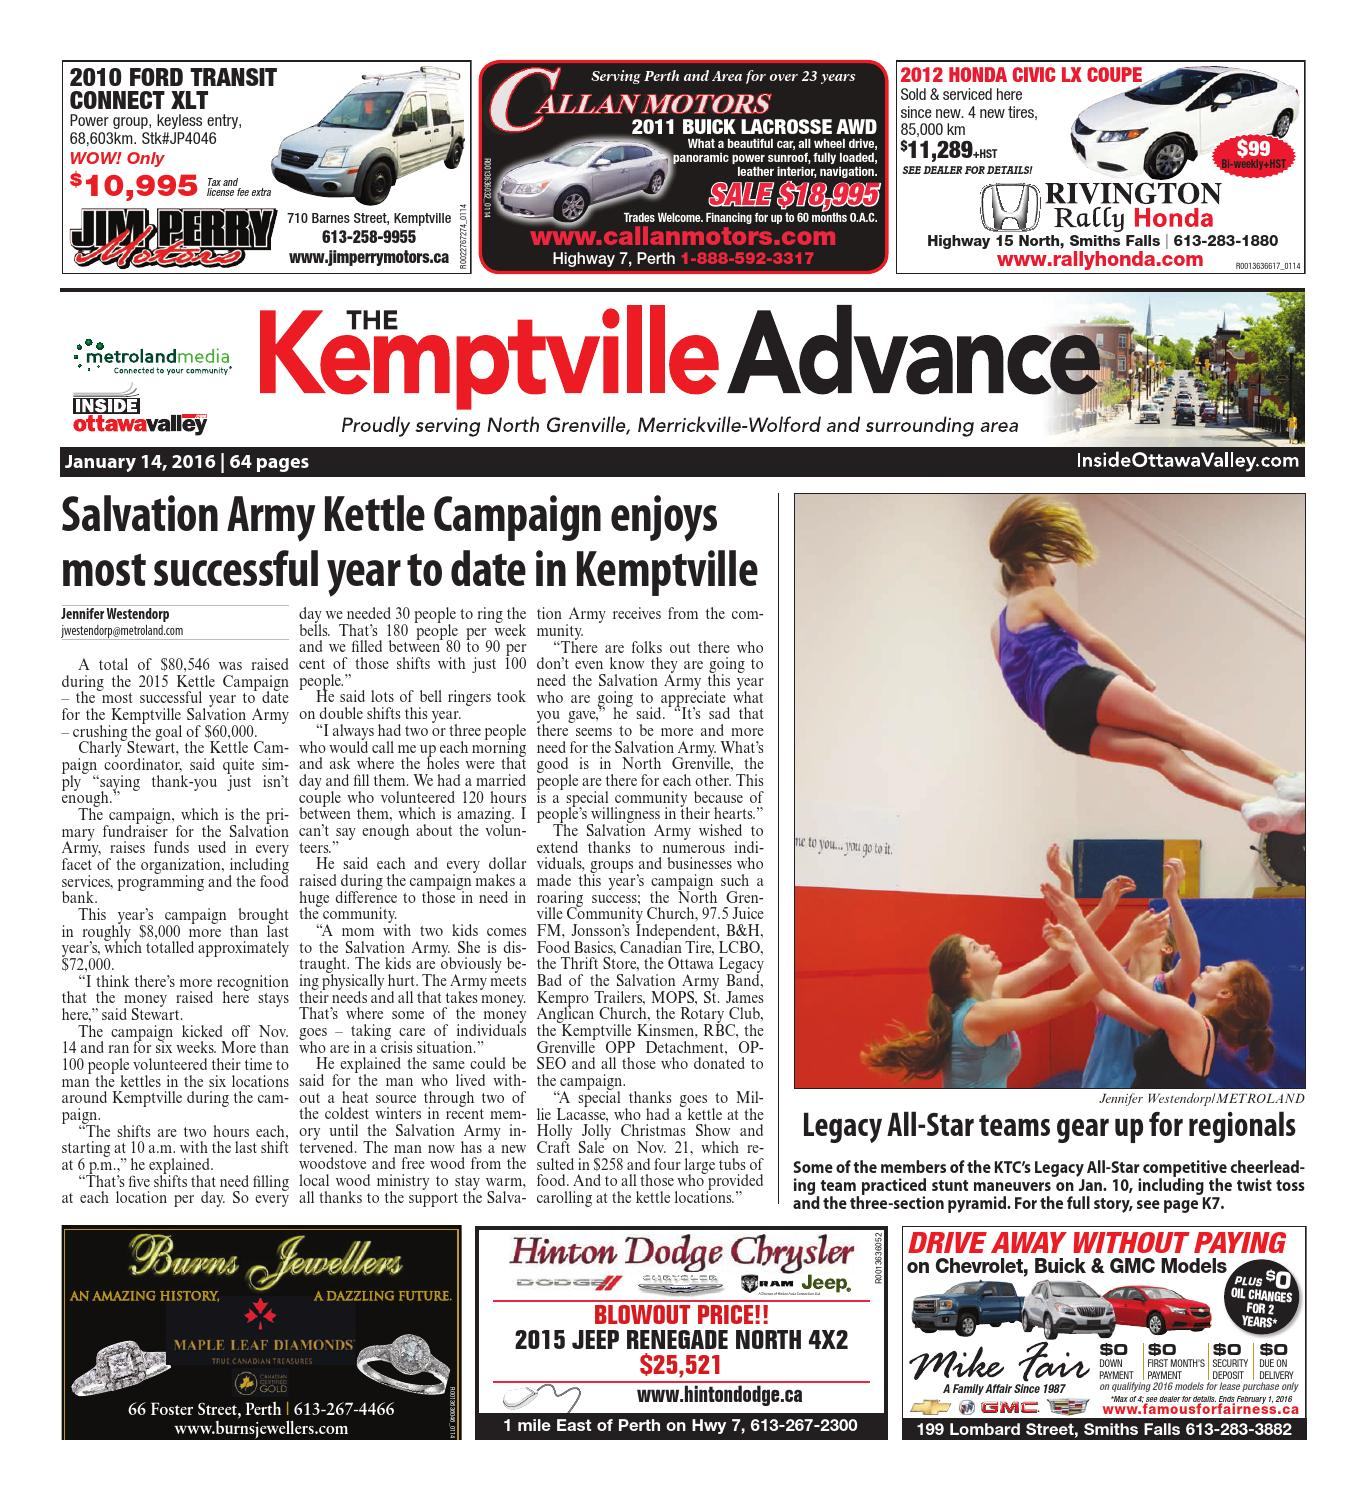 Kemptville011114 by Metroland East - Kemptville Advance - issuu